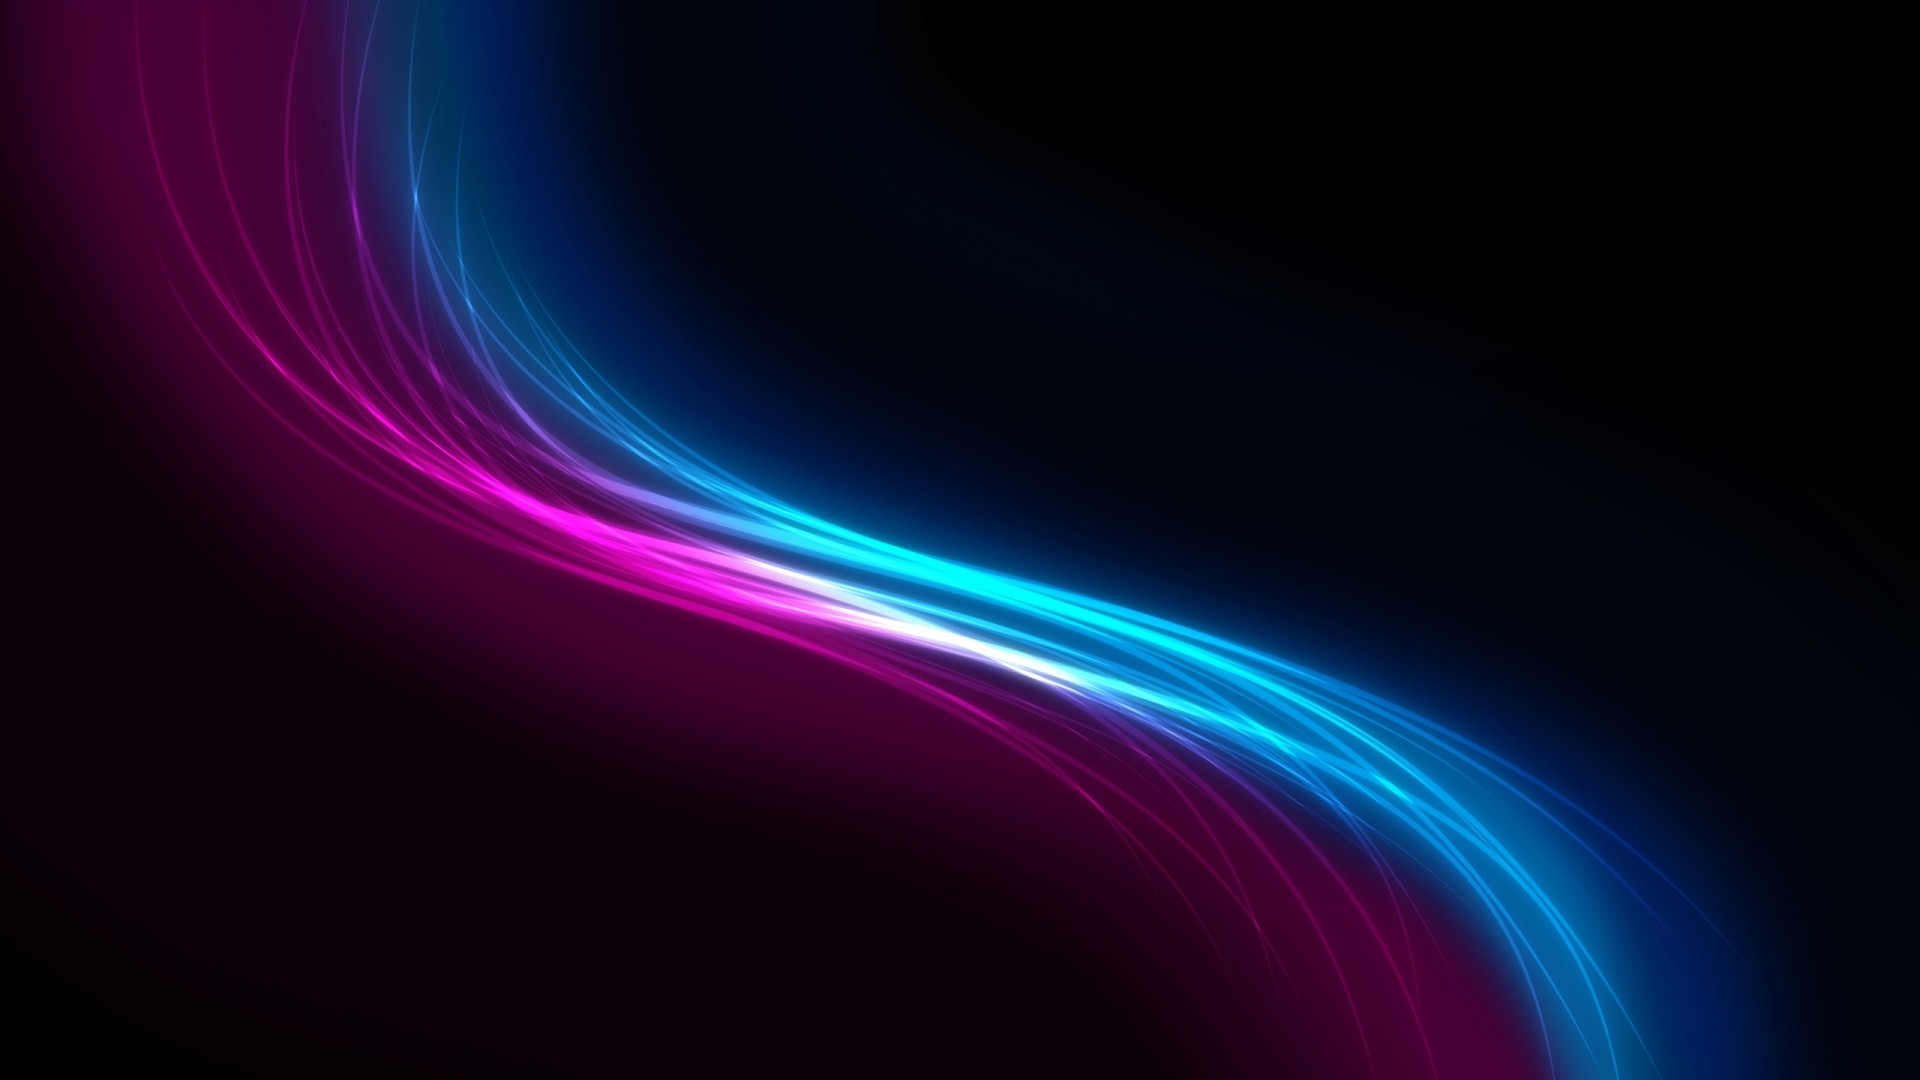 Abstract Swirls Wallpapers Hd Desktop And Mobile: Black-Swirl-Wallpaper HD Wallpaper